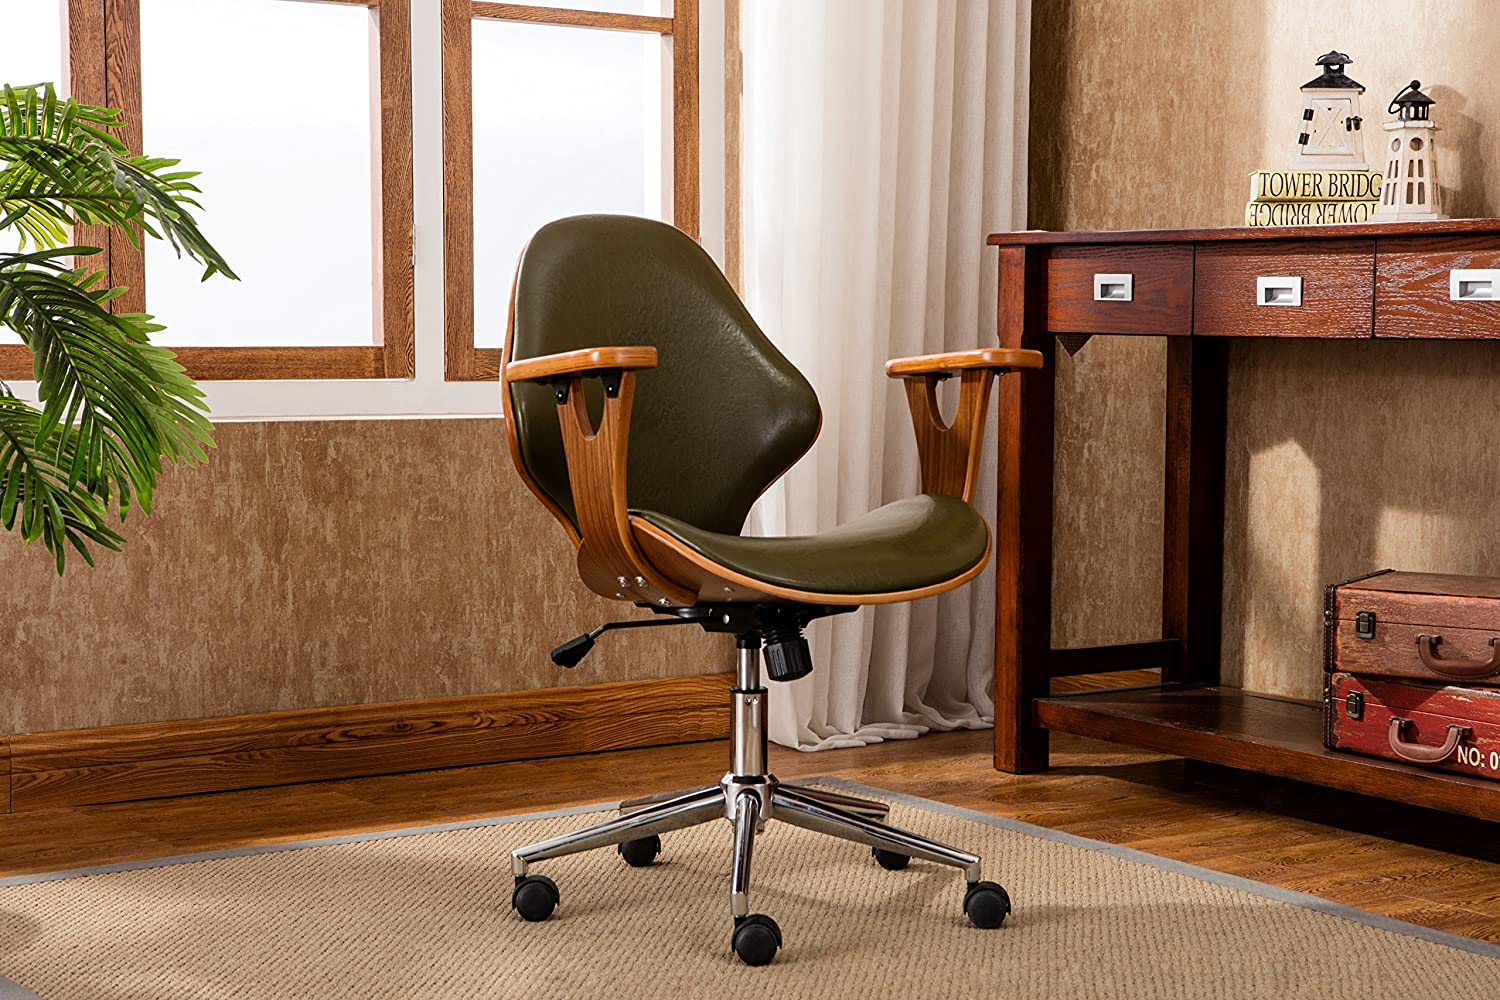 Porthos Home Lilian Office Chairs in Mid Century Modern Design with Arm Rests, Leather Upholstery, Height Adjustment & Stainless Steel Legs, Green